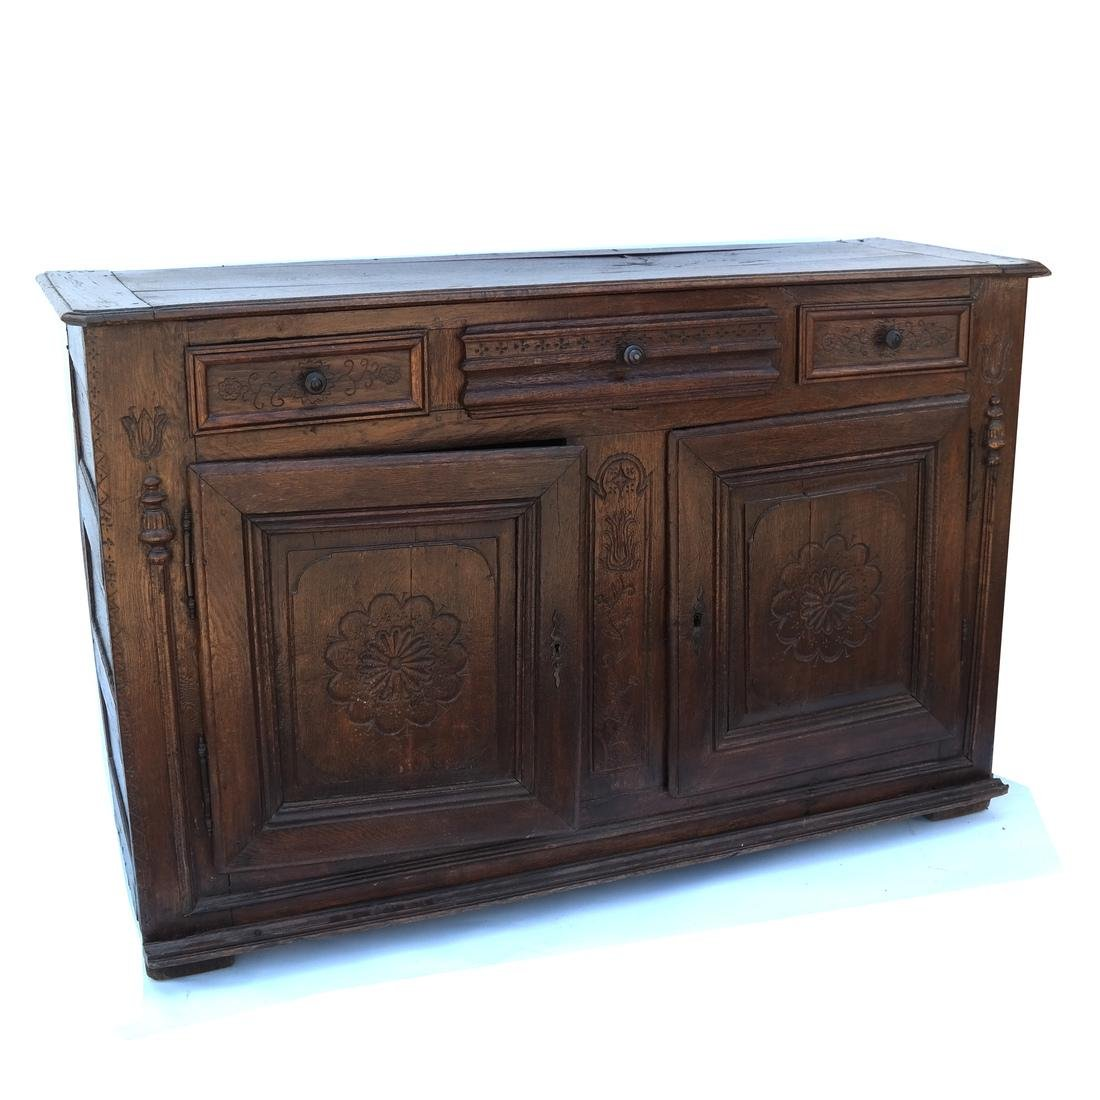 Antique French Provincial Sideboard